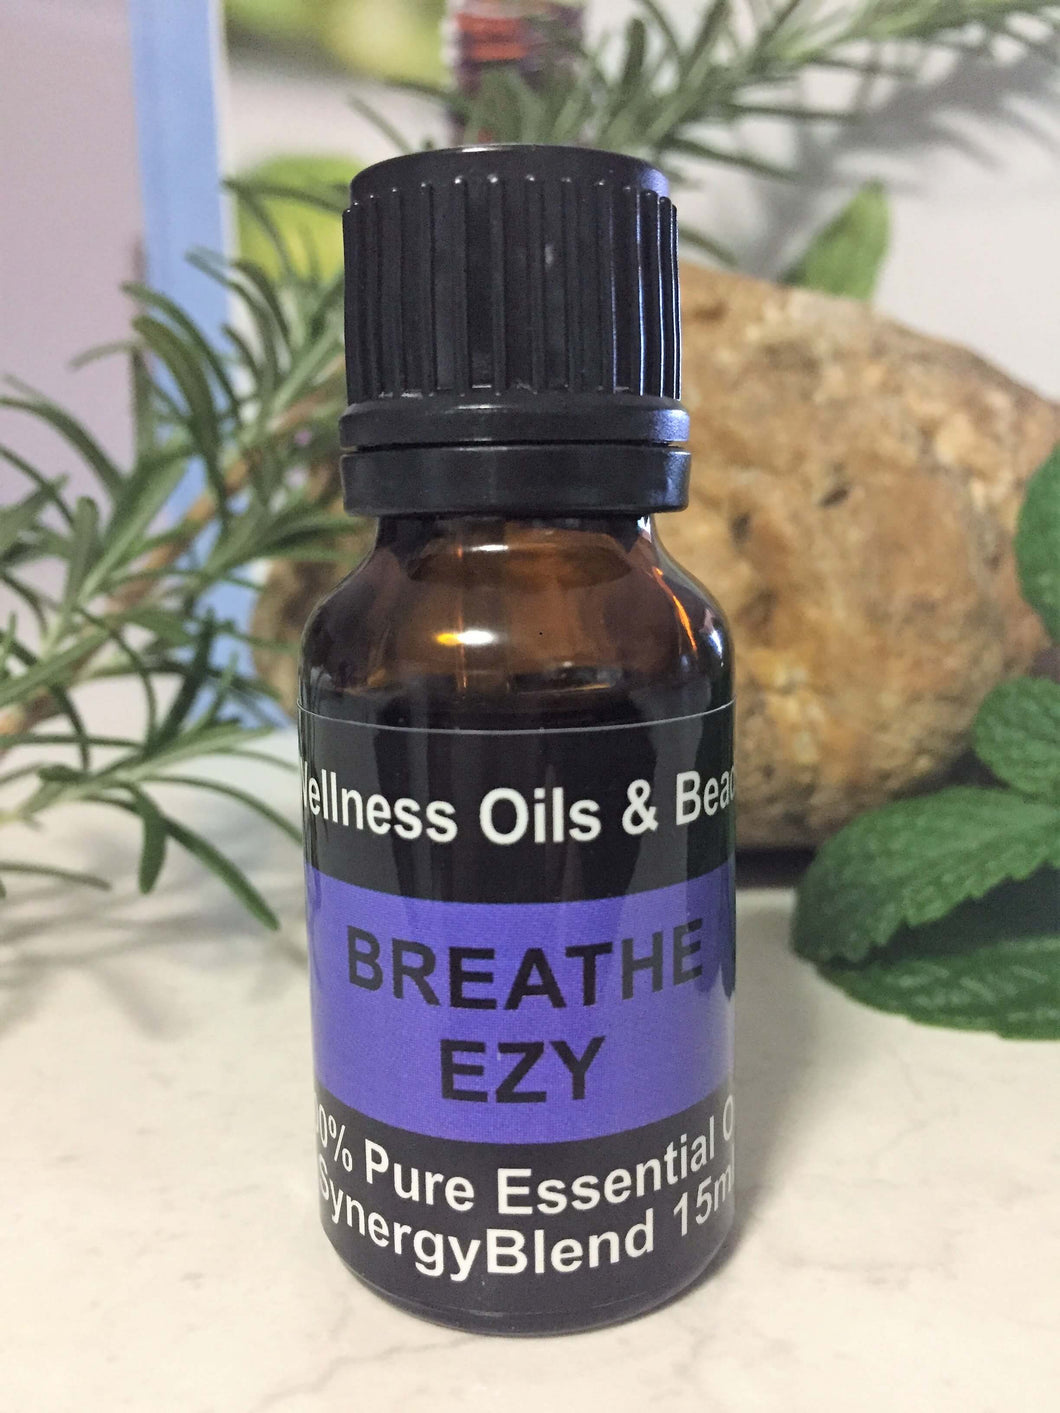 Breathe Ezy Essential Oil Blend 15ml-Wellness Oils & Beads